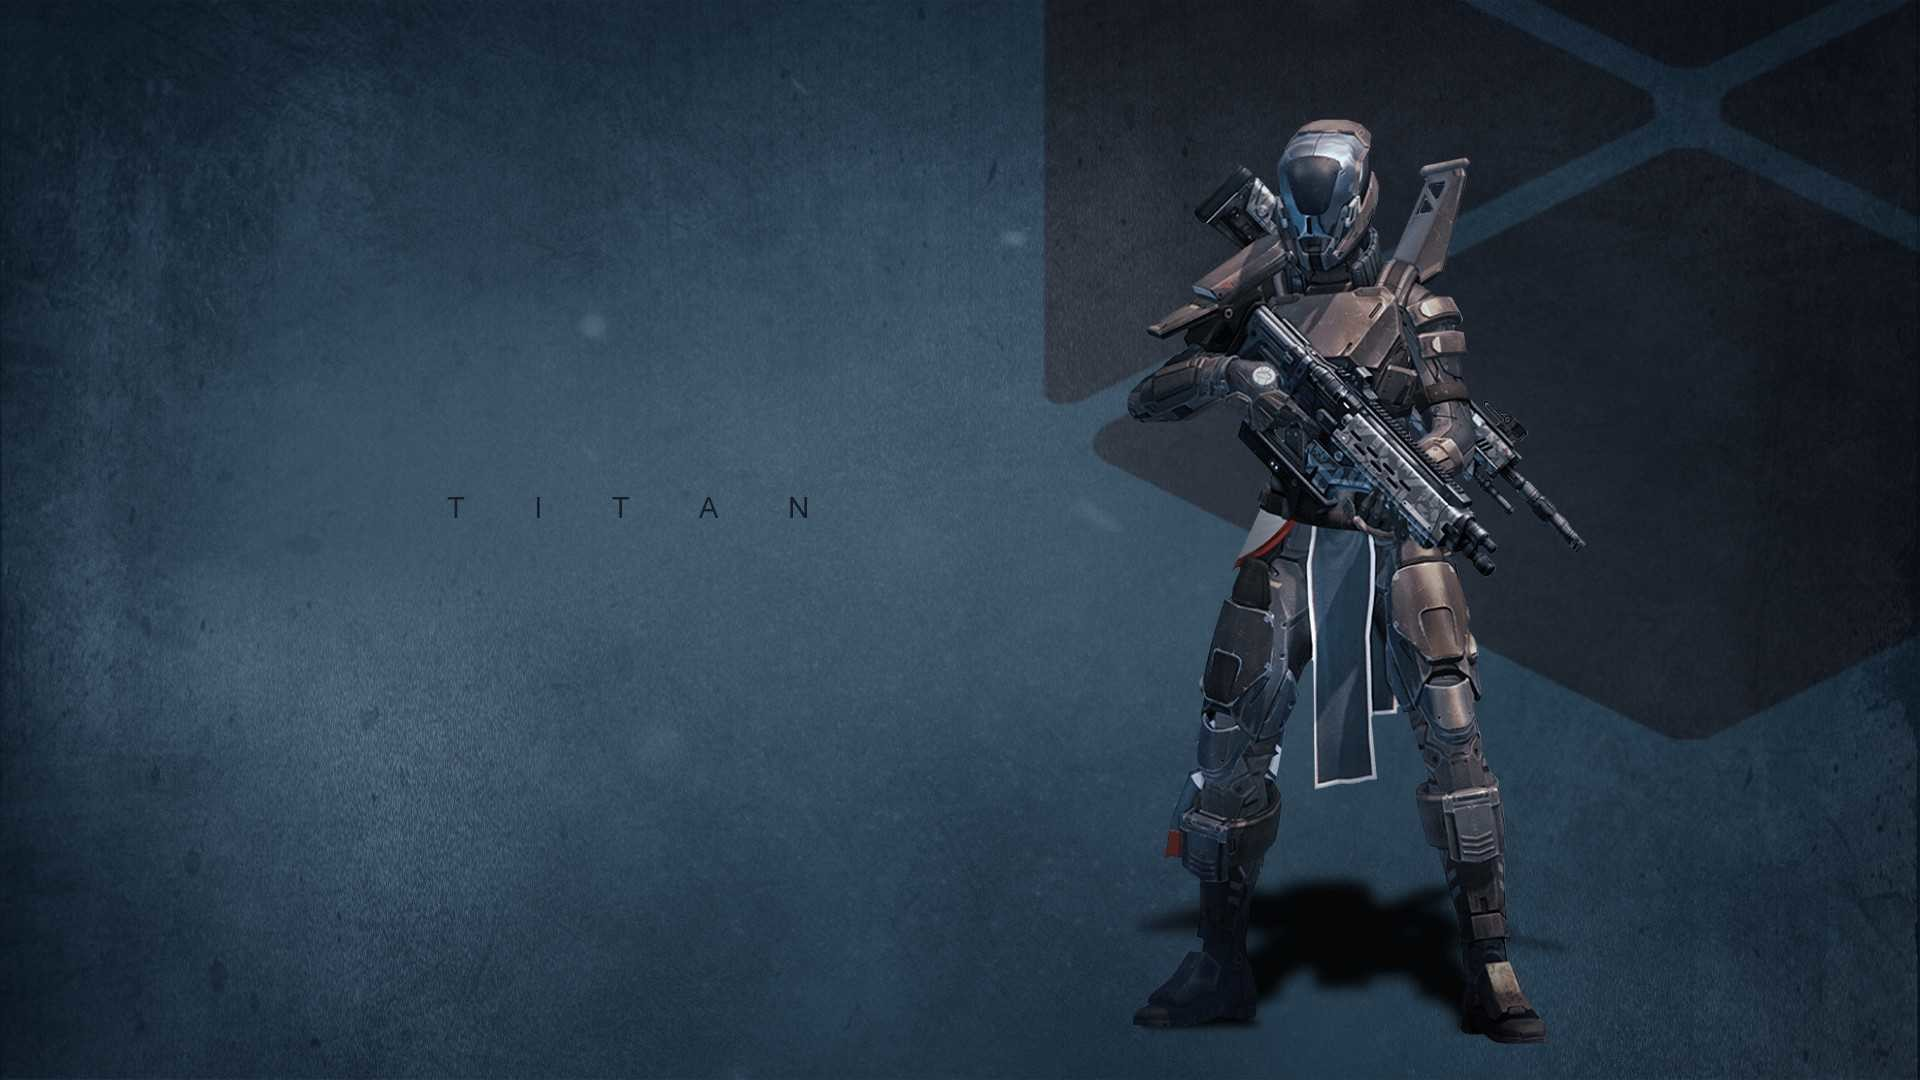 Res: 1920x1080, Destiny Hd Wallpaper With Amazing Wallpapers For 2017 Pictures